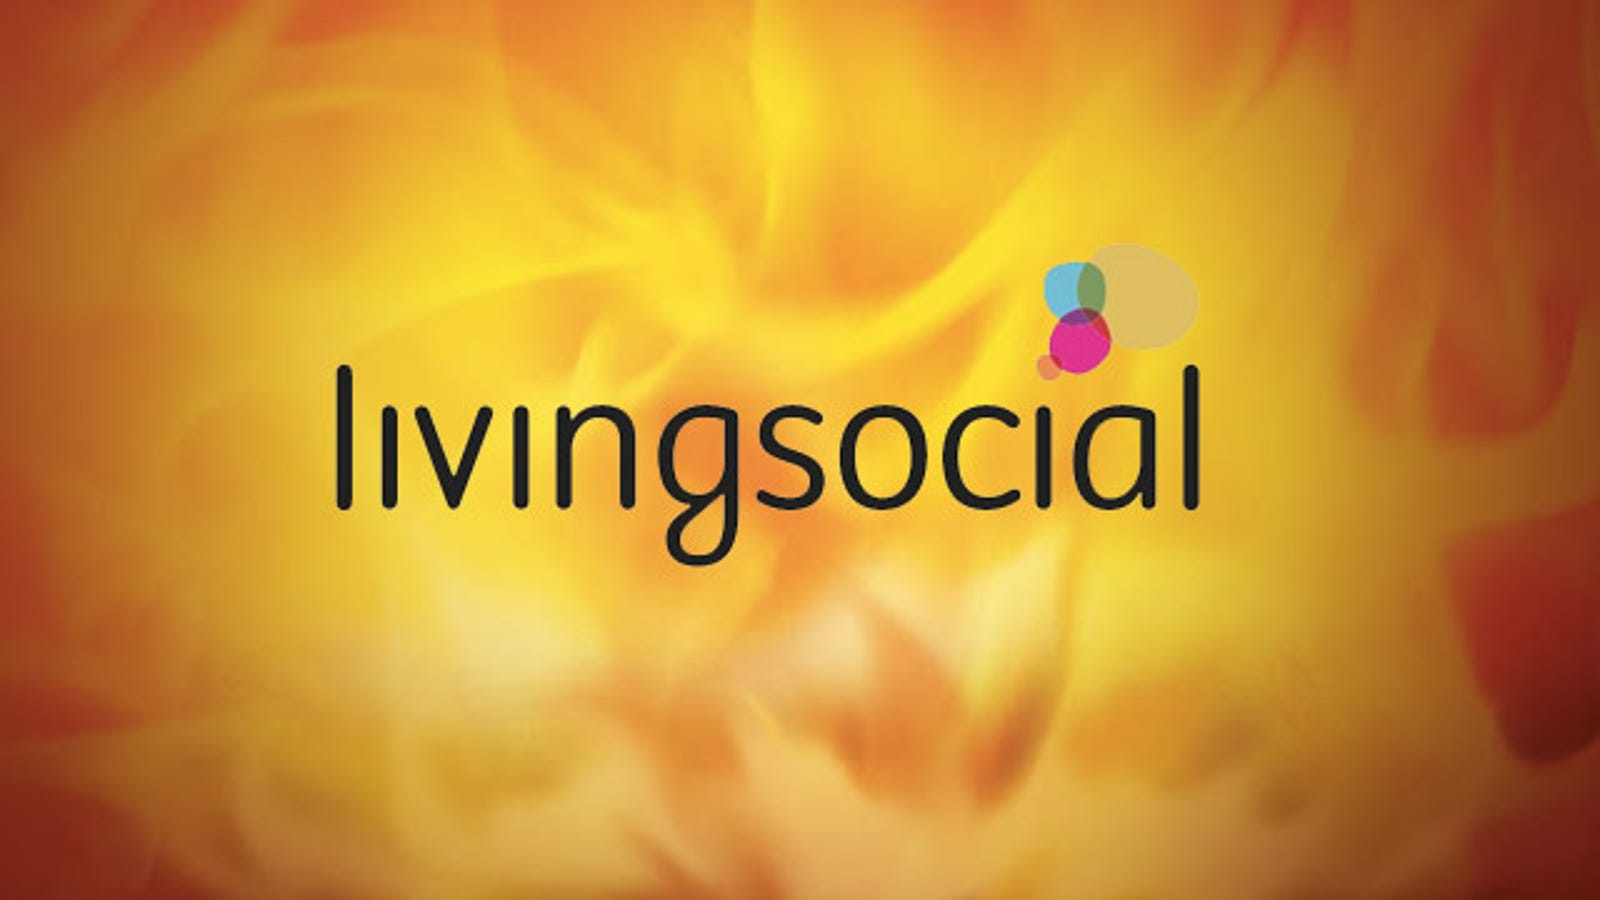 livingsocial hacked time to change your passwords